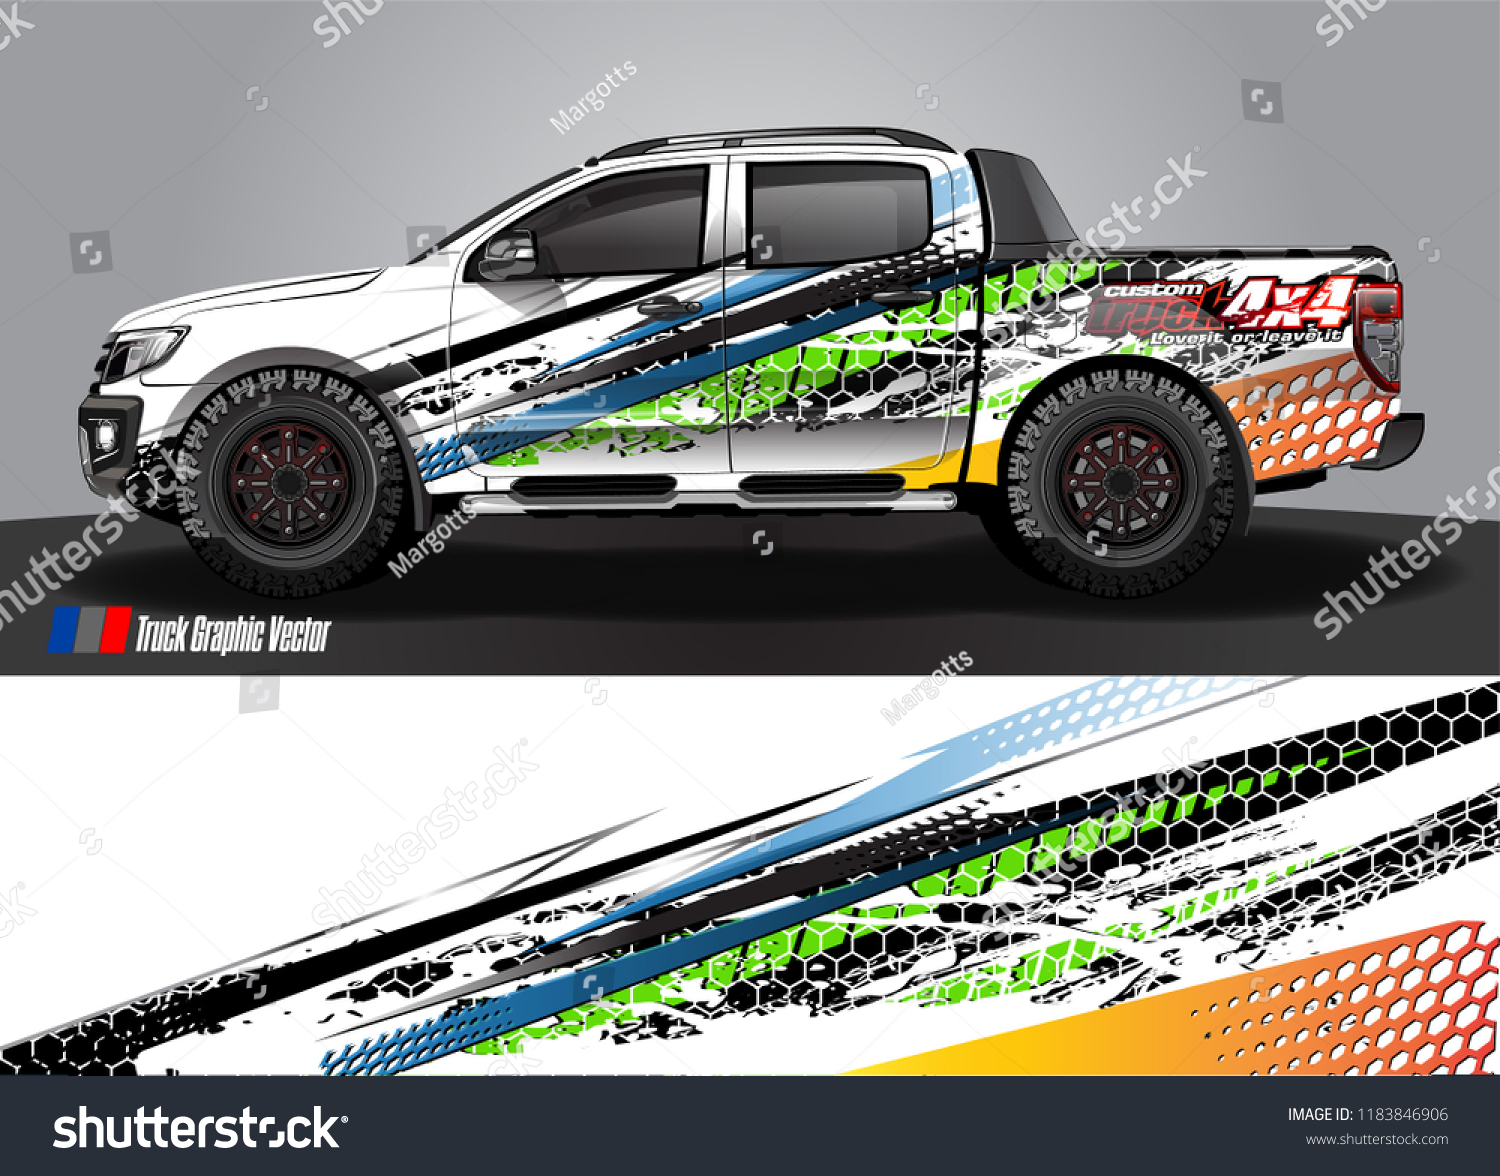 Truck decal wrap design vector abstract racing graphic stripe background kit for vehicle vinyl